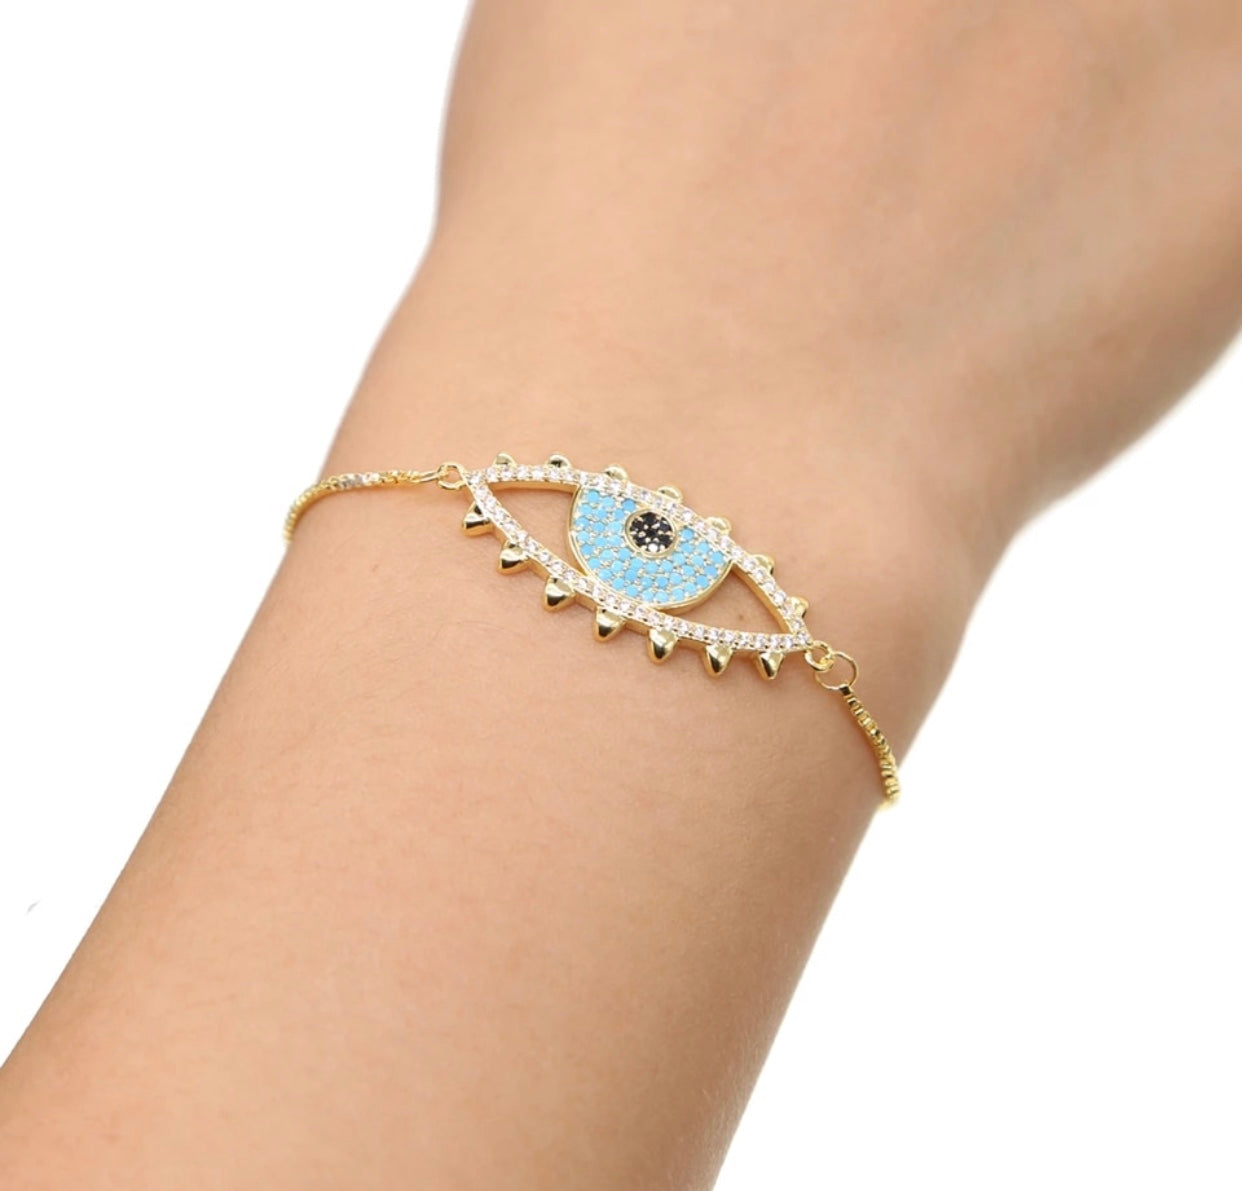 Evil Eye Adjustable Bracelet - Spear and Stone